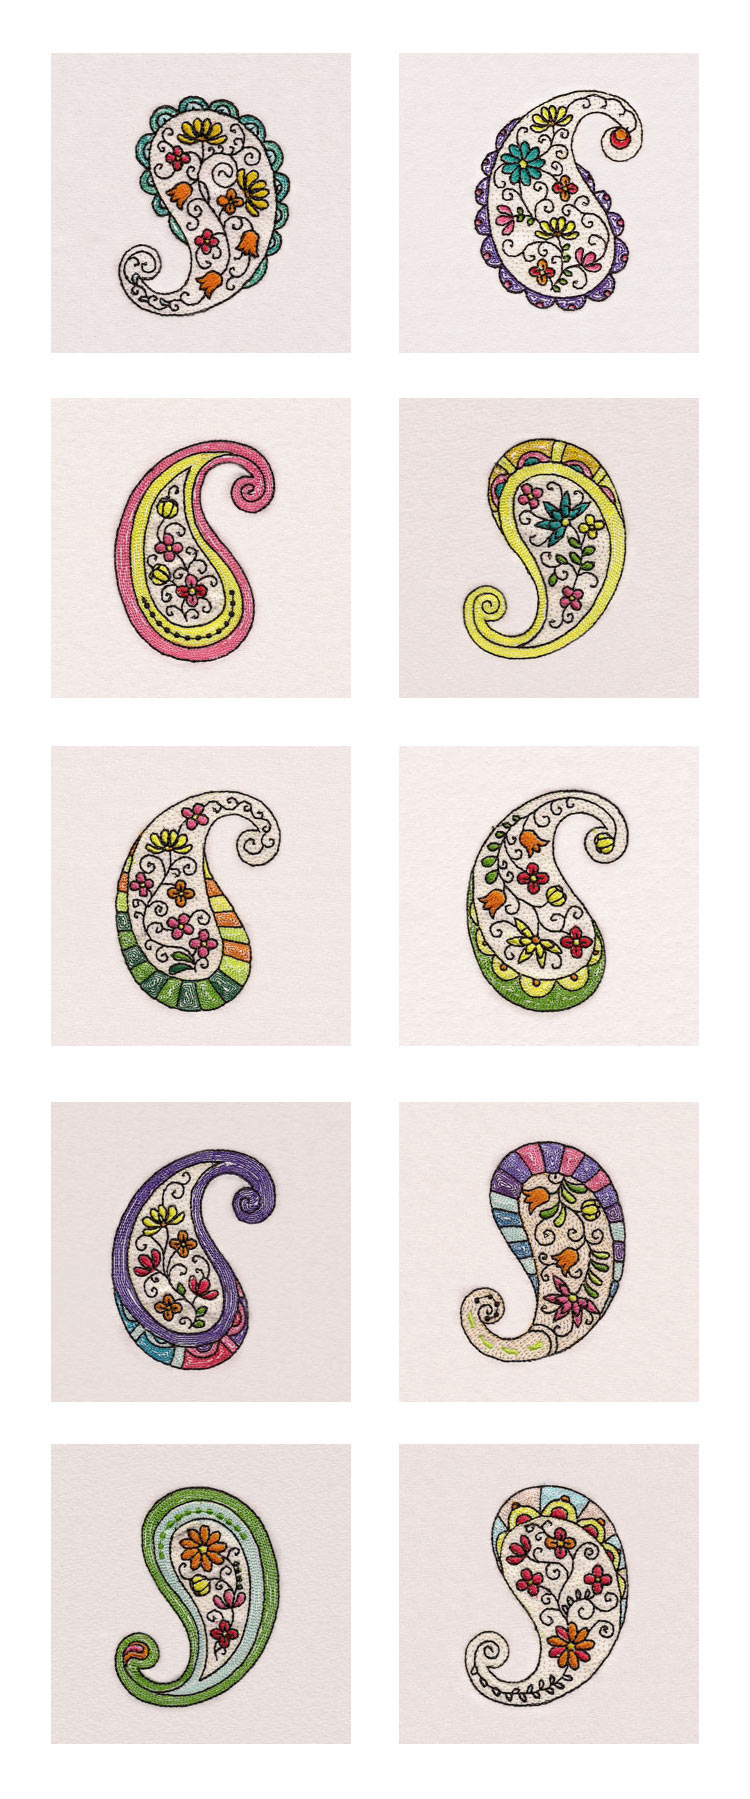 Floral Paisley Embroidery Machine Design Details